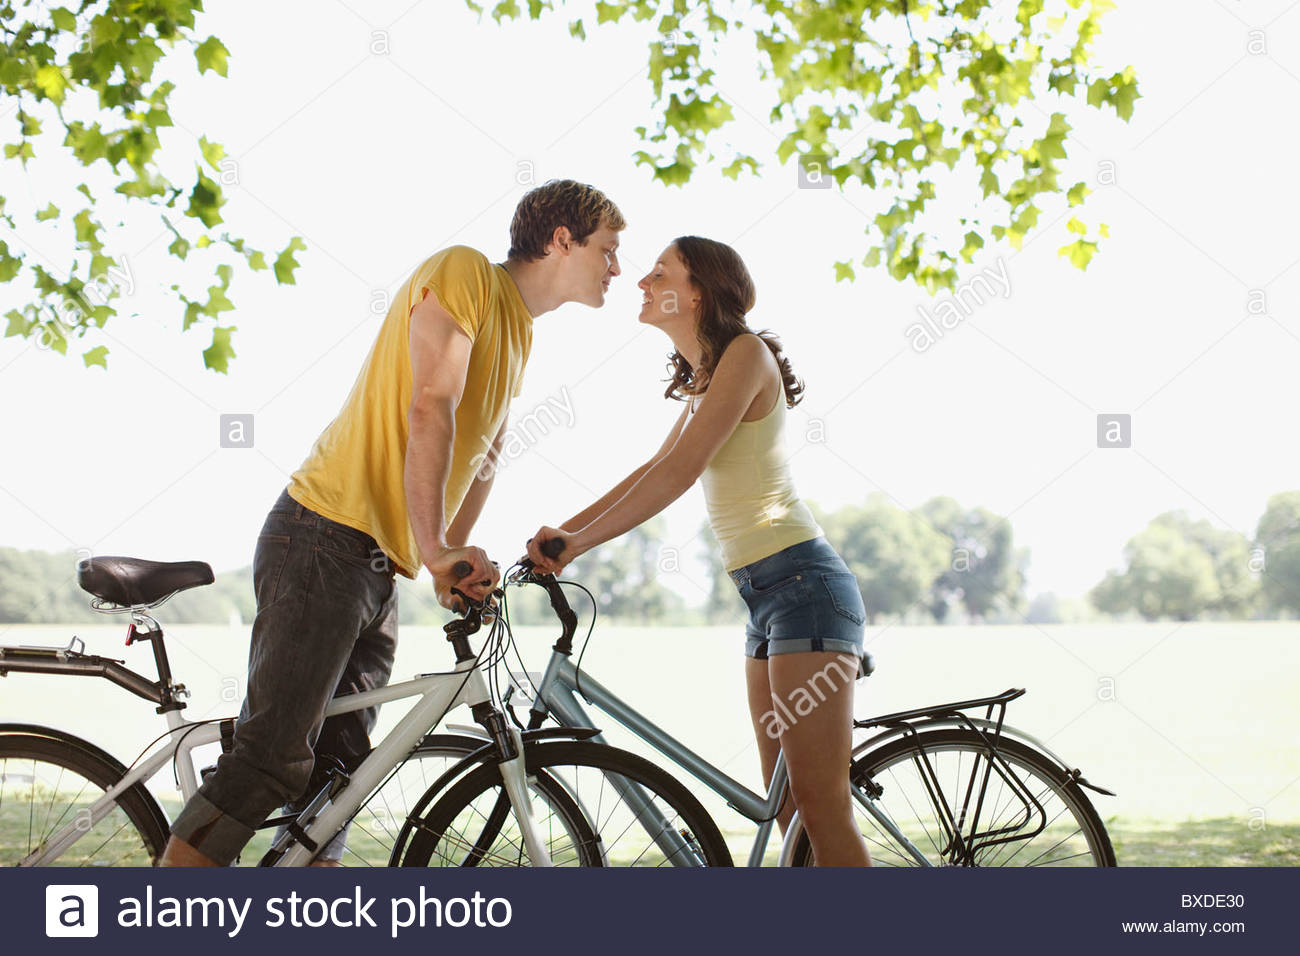 Couple on bicycle stopping and kissing - Stock Image